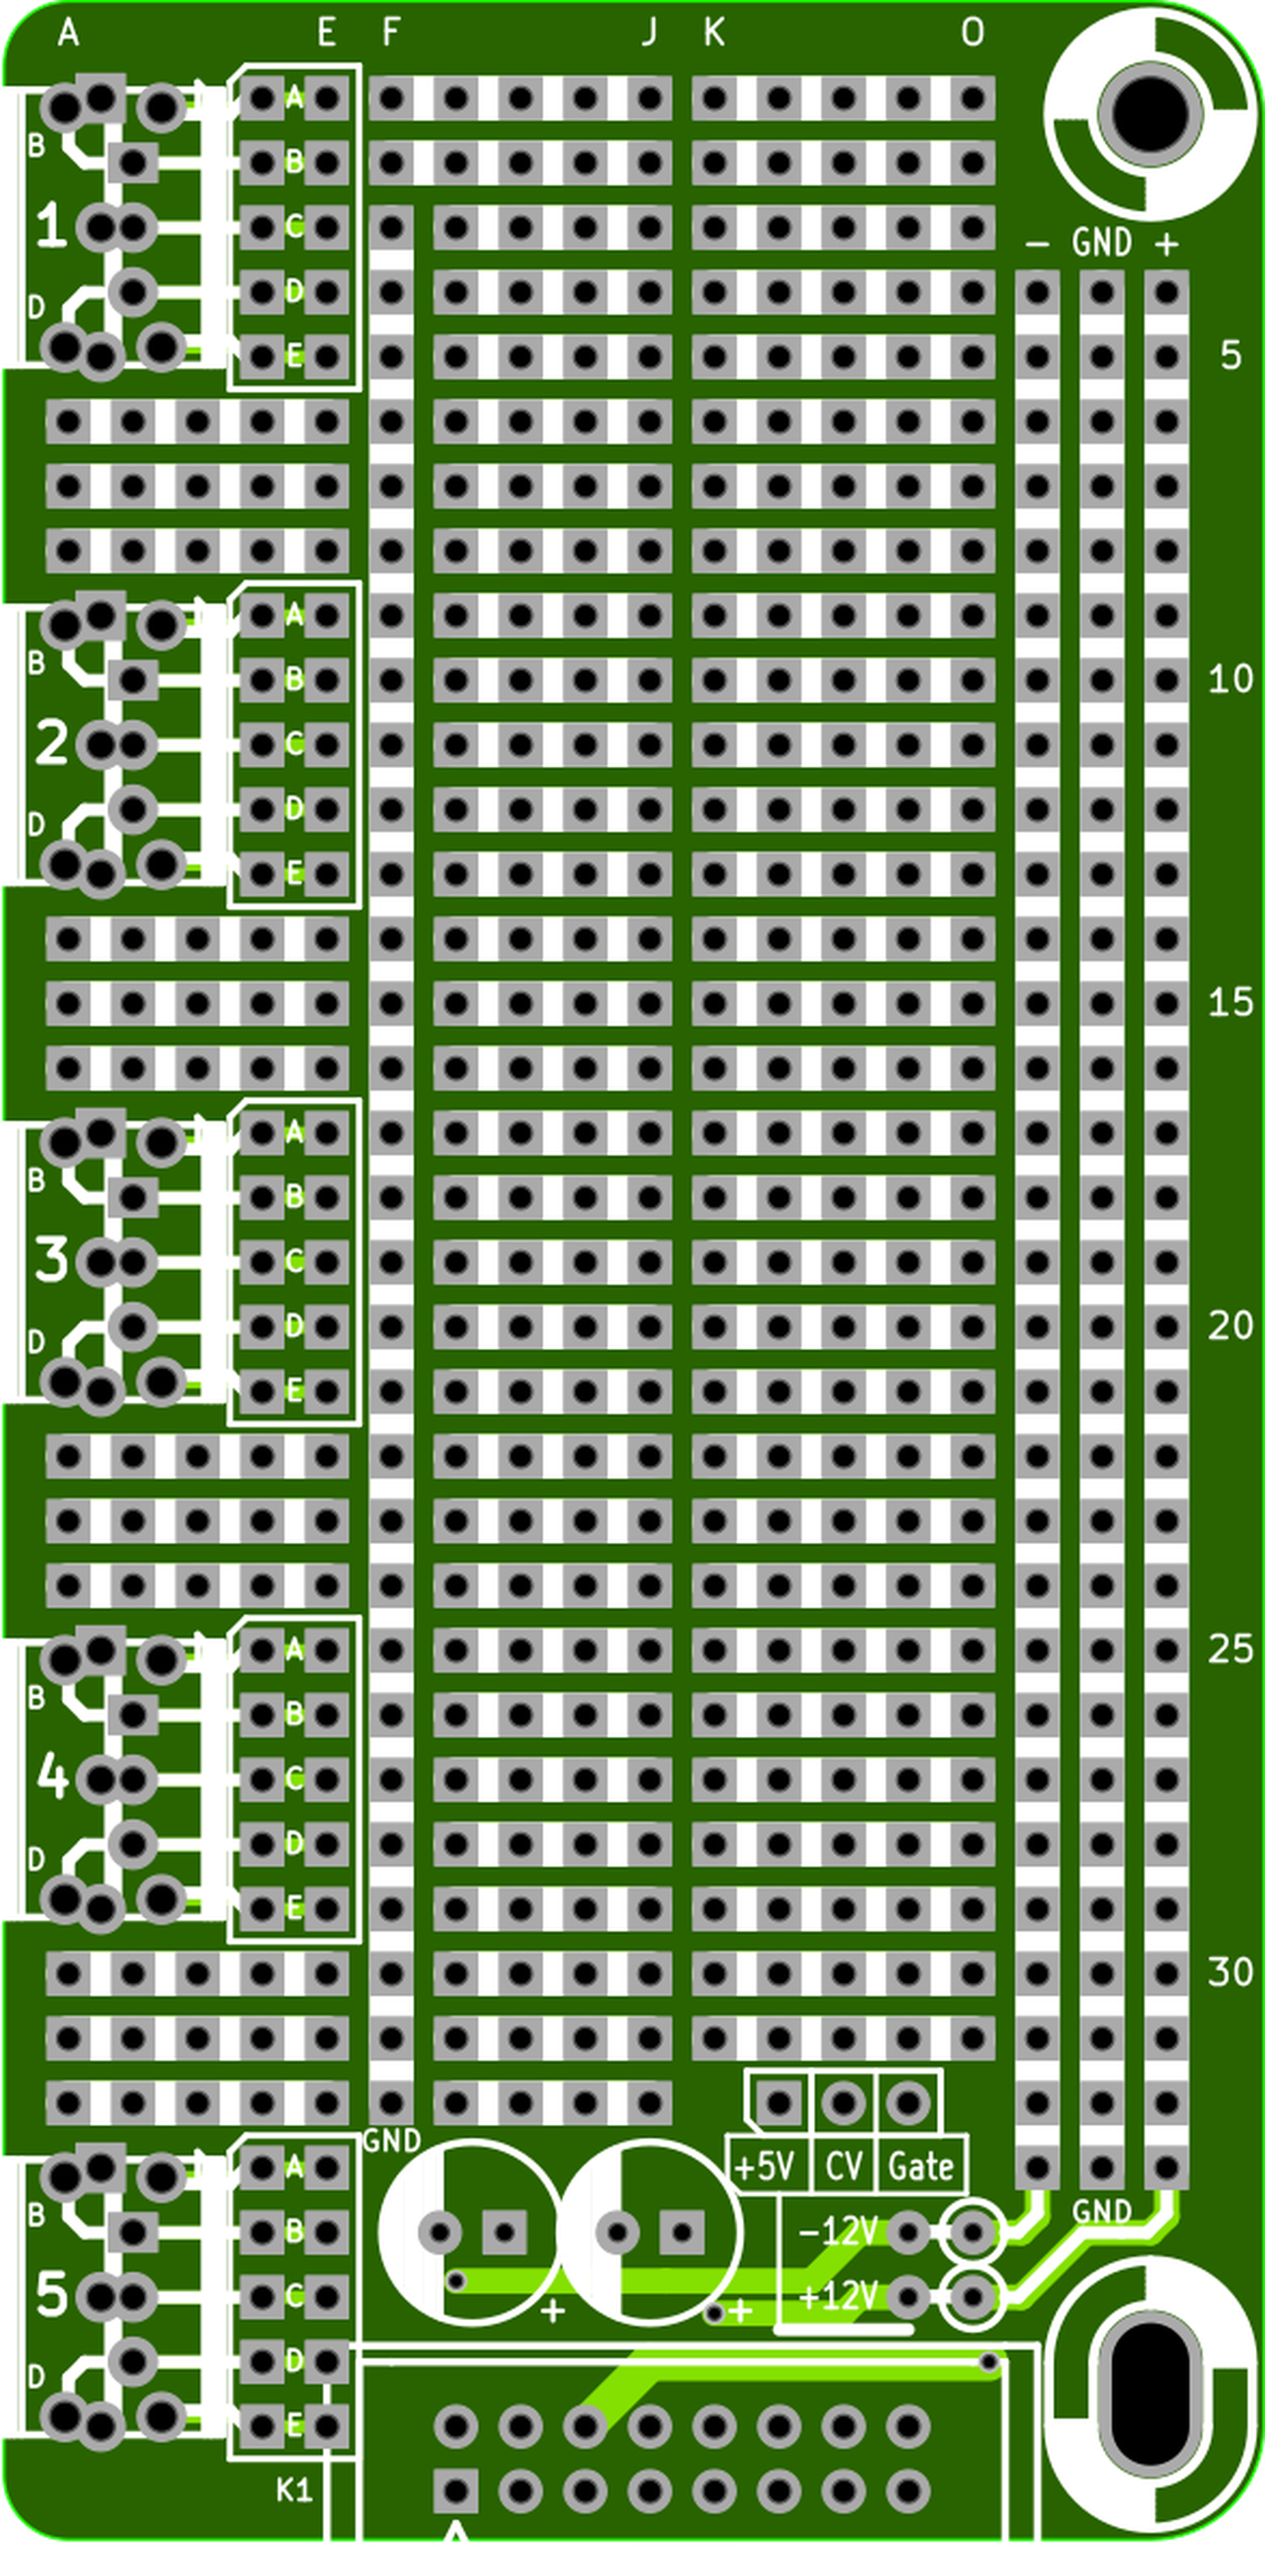 Eurorack Stripboard Pcb From Electronic Things And Stuff On Tindie 12 Pcs Kit Prototyping Printed Circuit Board Prototype 2